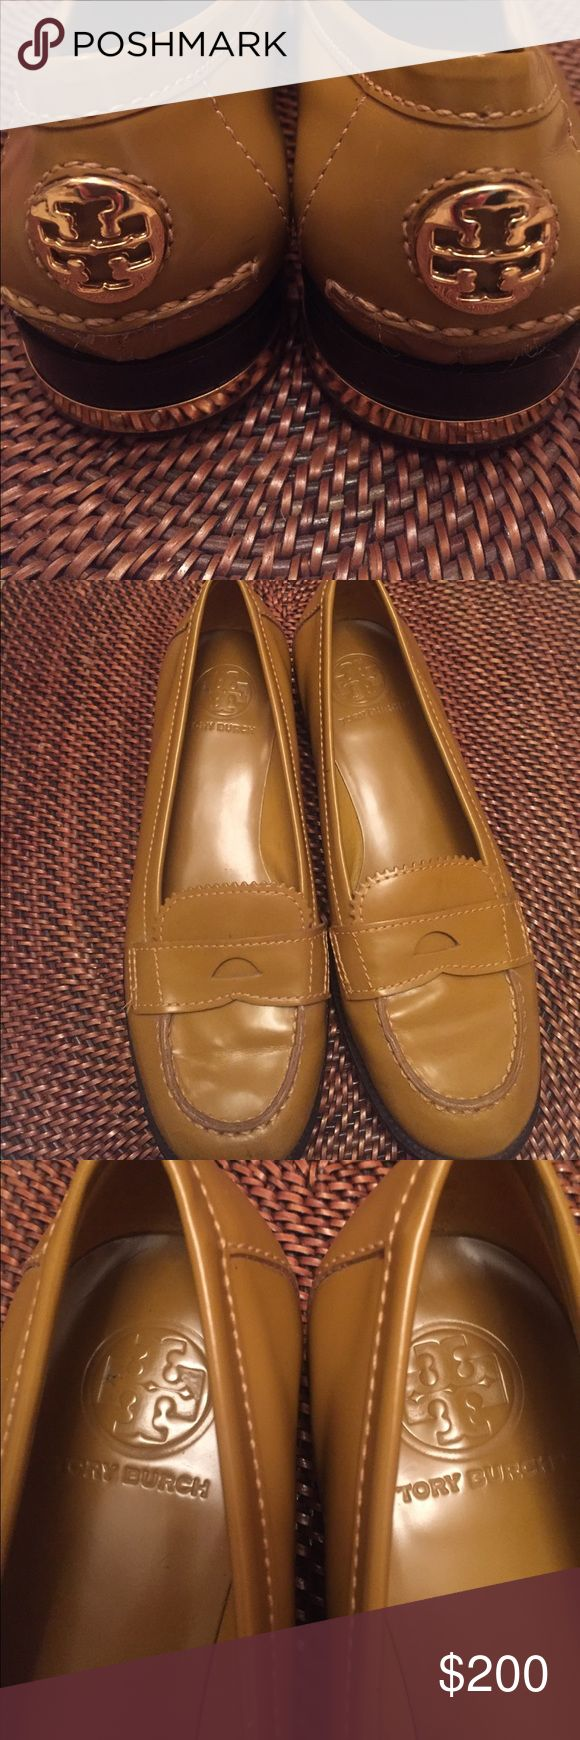 Tory Burch loafers Gorgeous Tory Burch Penny loafers. A Classic with a twist! Genuine leather. In the most amazing cross between mustard yellow and olive green patent leather. Gold heels with stacked mahogany wood look, with gold Tory Burch sign on back of heels. Excellent used condition and very clean. Only worn a handful of times. No wear to the inside of shoe. Classy preppy fabulous FUN! Tory Burch Shoes Flats & Loafers